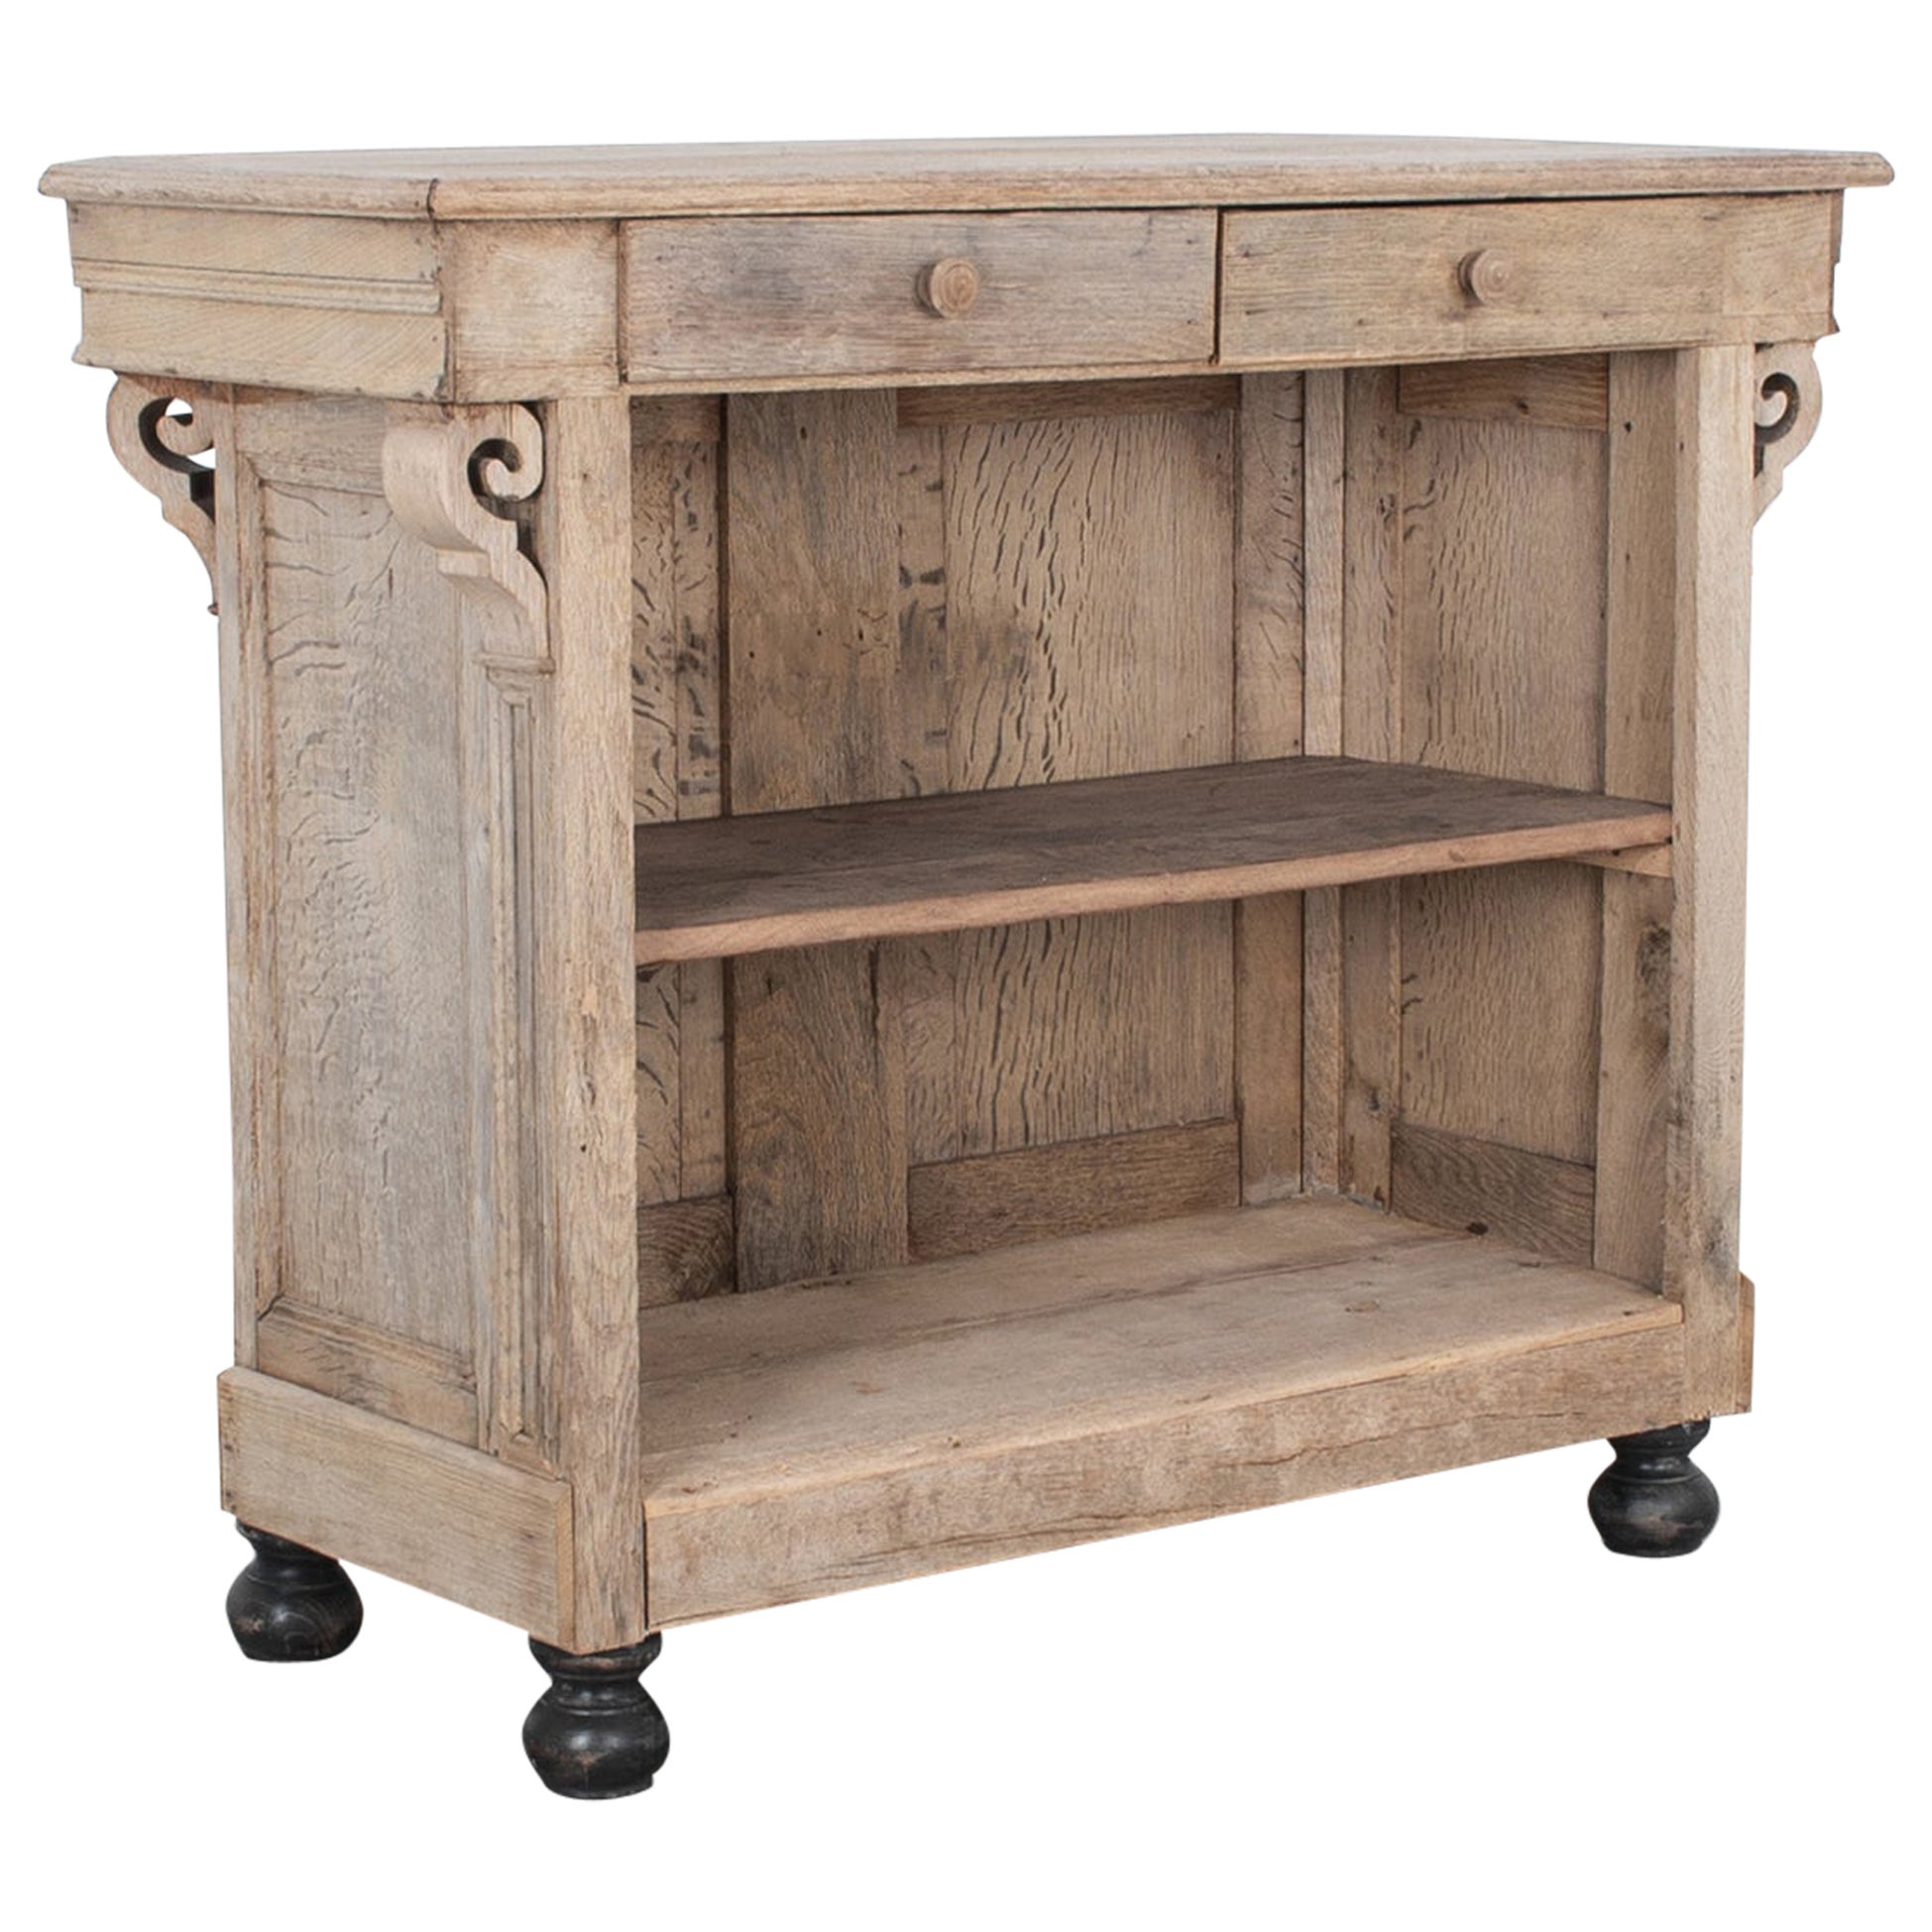 Late 19th Century French Bleached Oak Bar